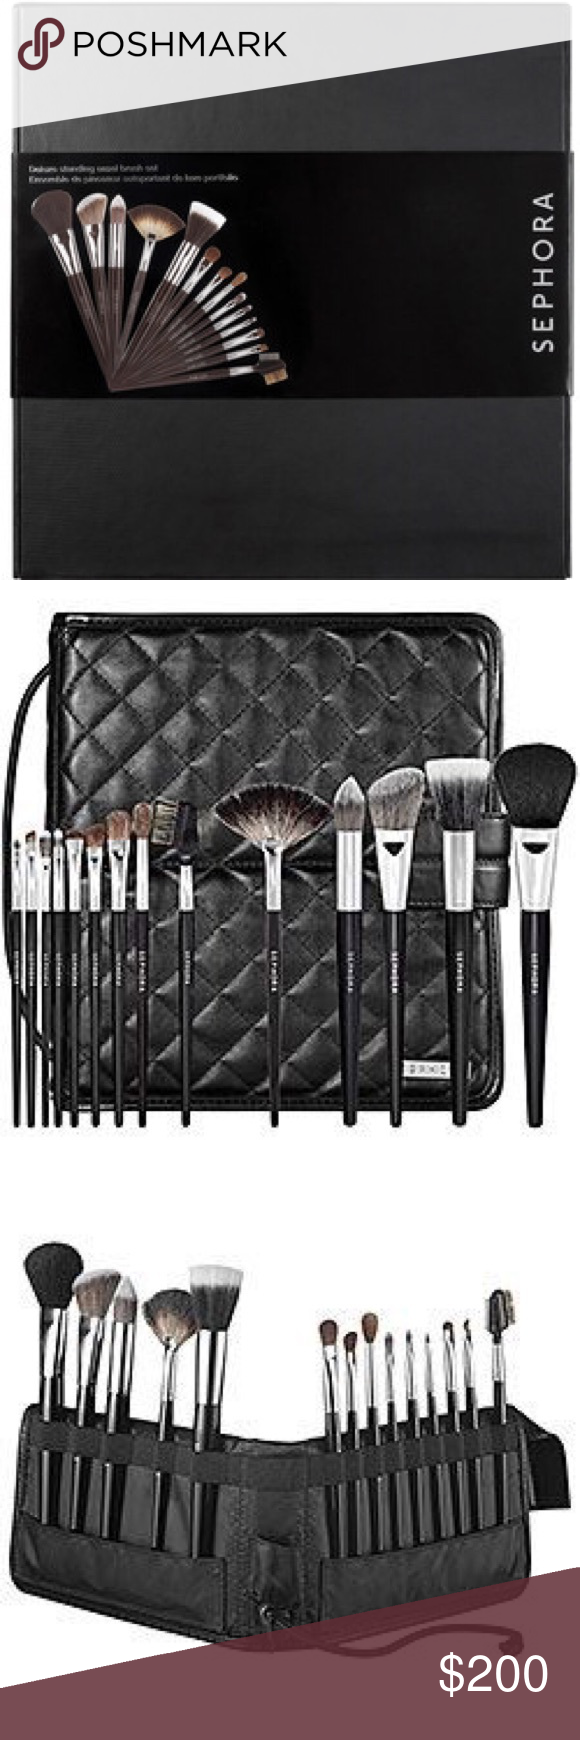 BRAND NEW!!🎈🎈SEPHORA 14 Piece Brush Set. Never used before, at the store this set is $275. You will not find it cheaper. Perfects for contouring and eyeshadow Sephora Makeup Brushes & Tools